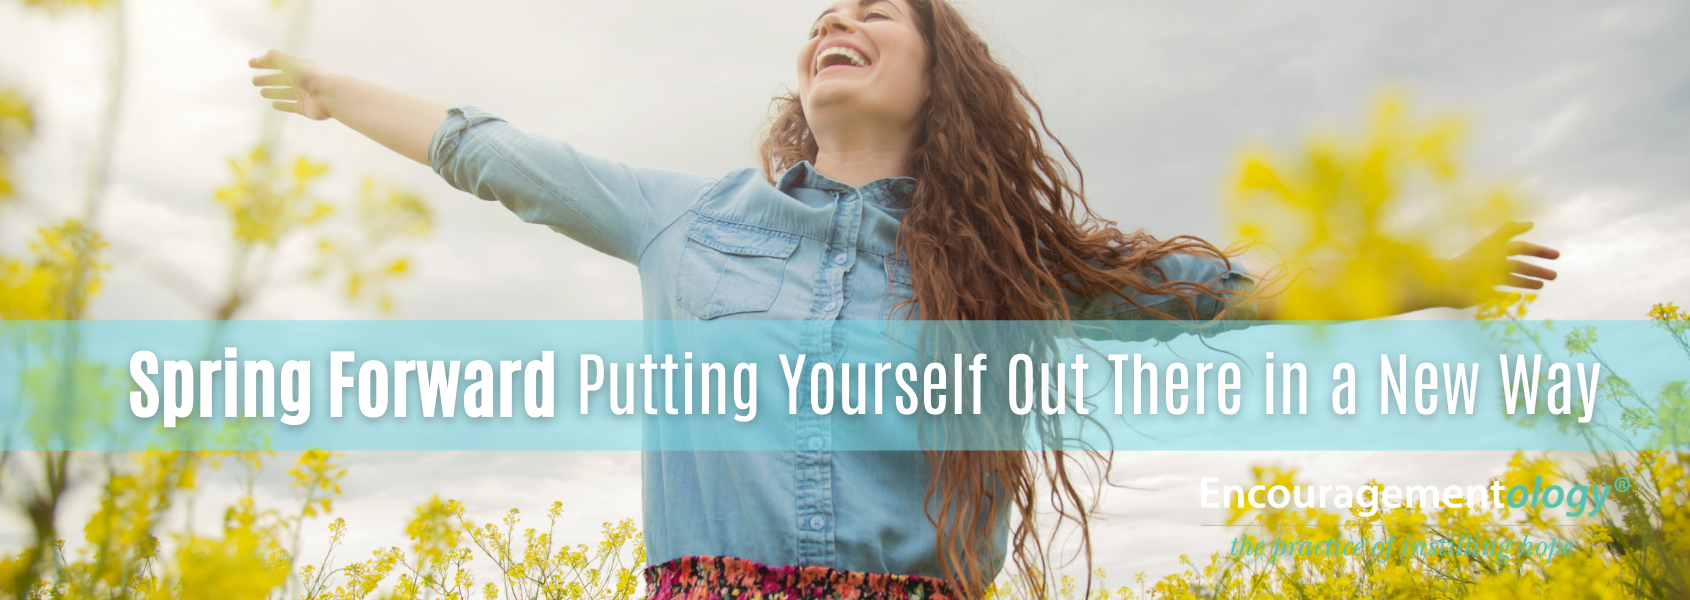 Putting Yourself Out There in a New Way